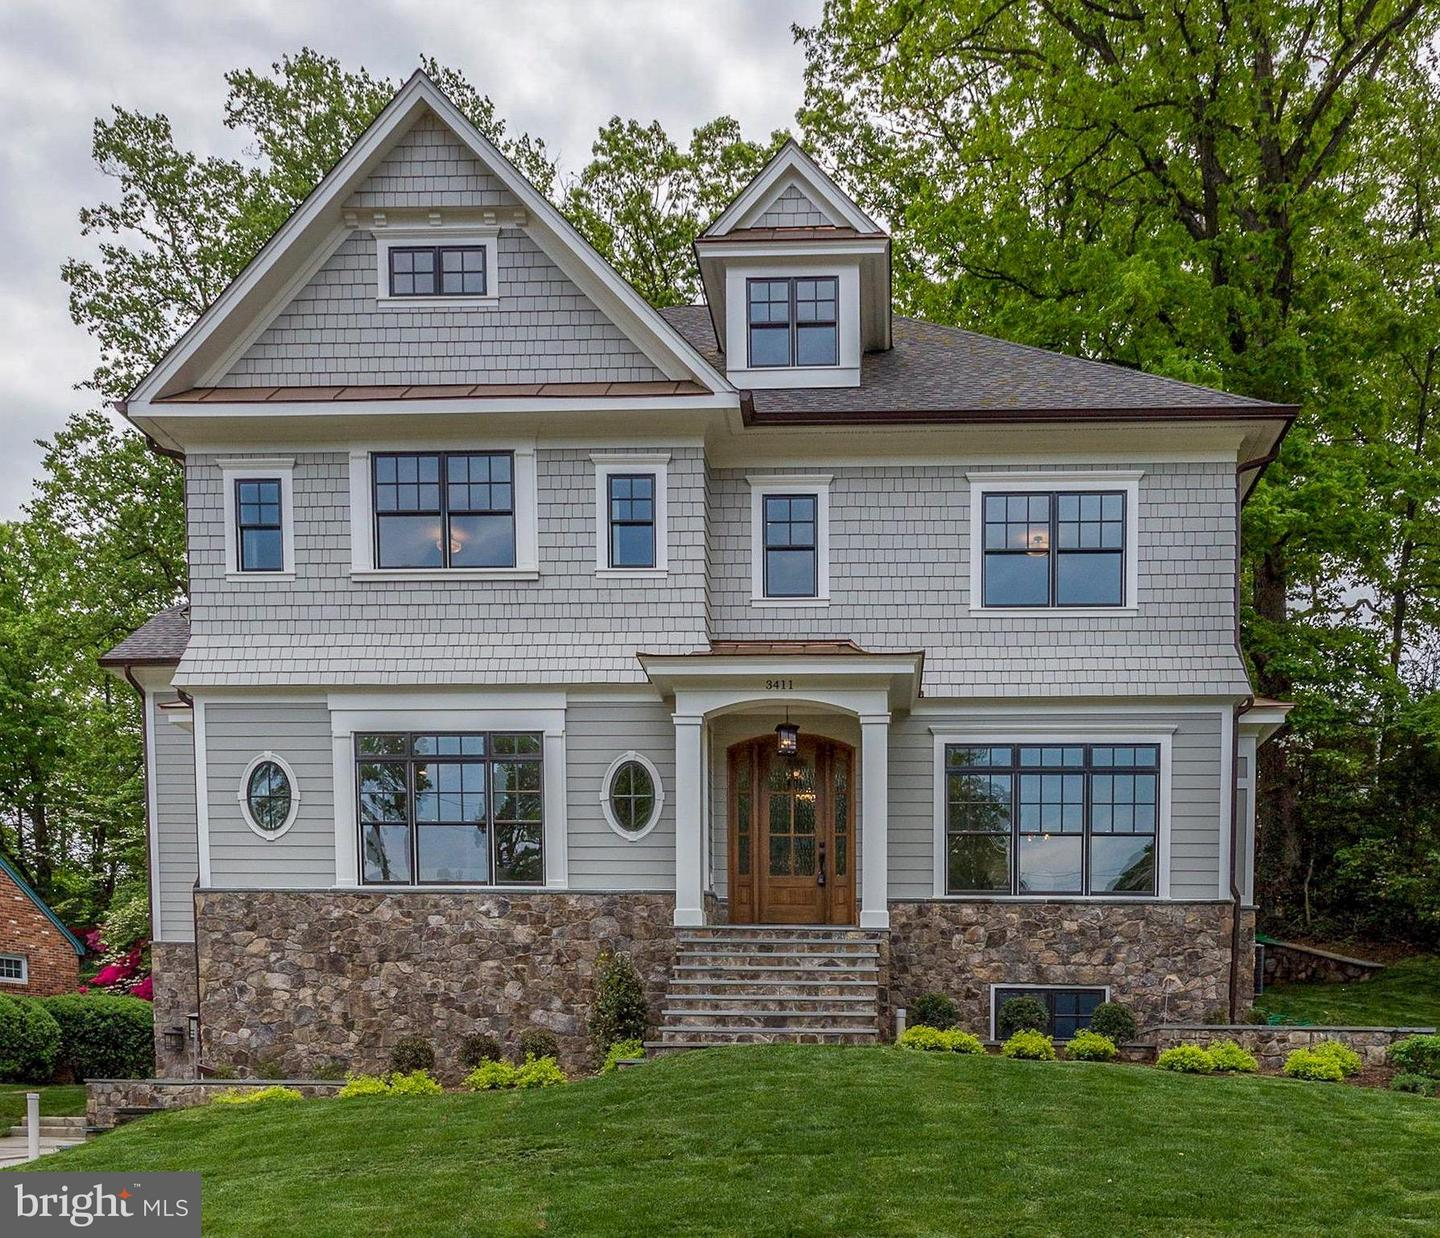 Single Family Home for Sale at 3411 Woodrow St N 3411 Woodrow St N Arlington, Virginia 22207 United States